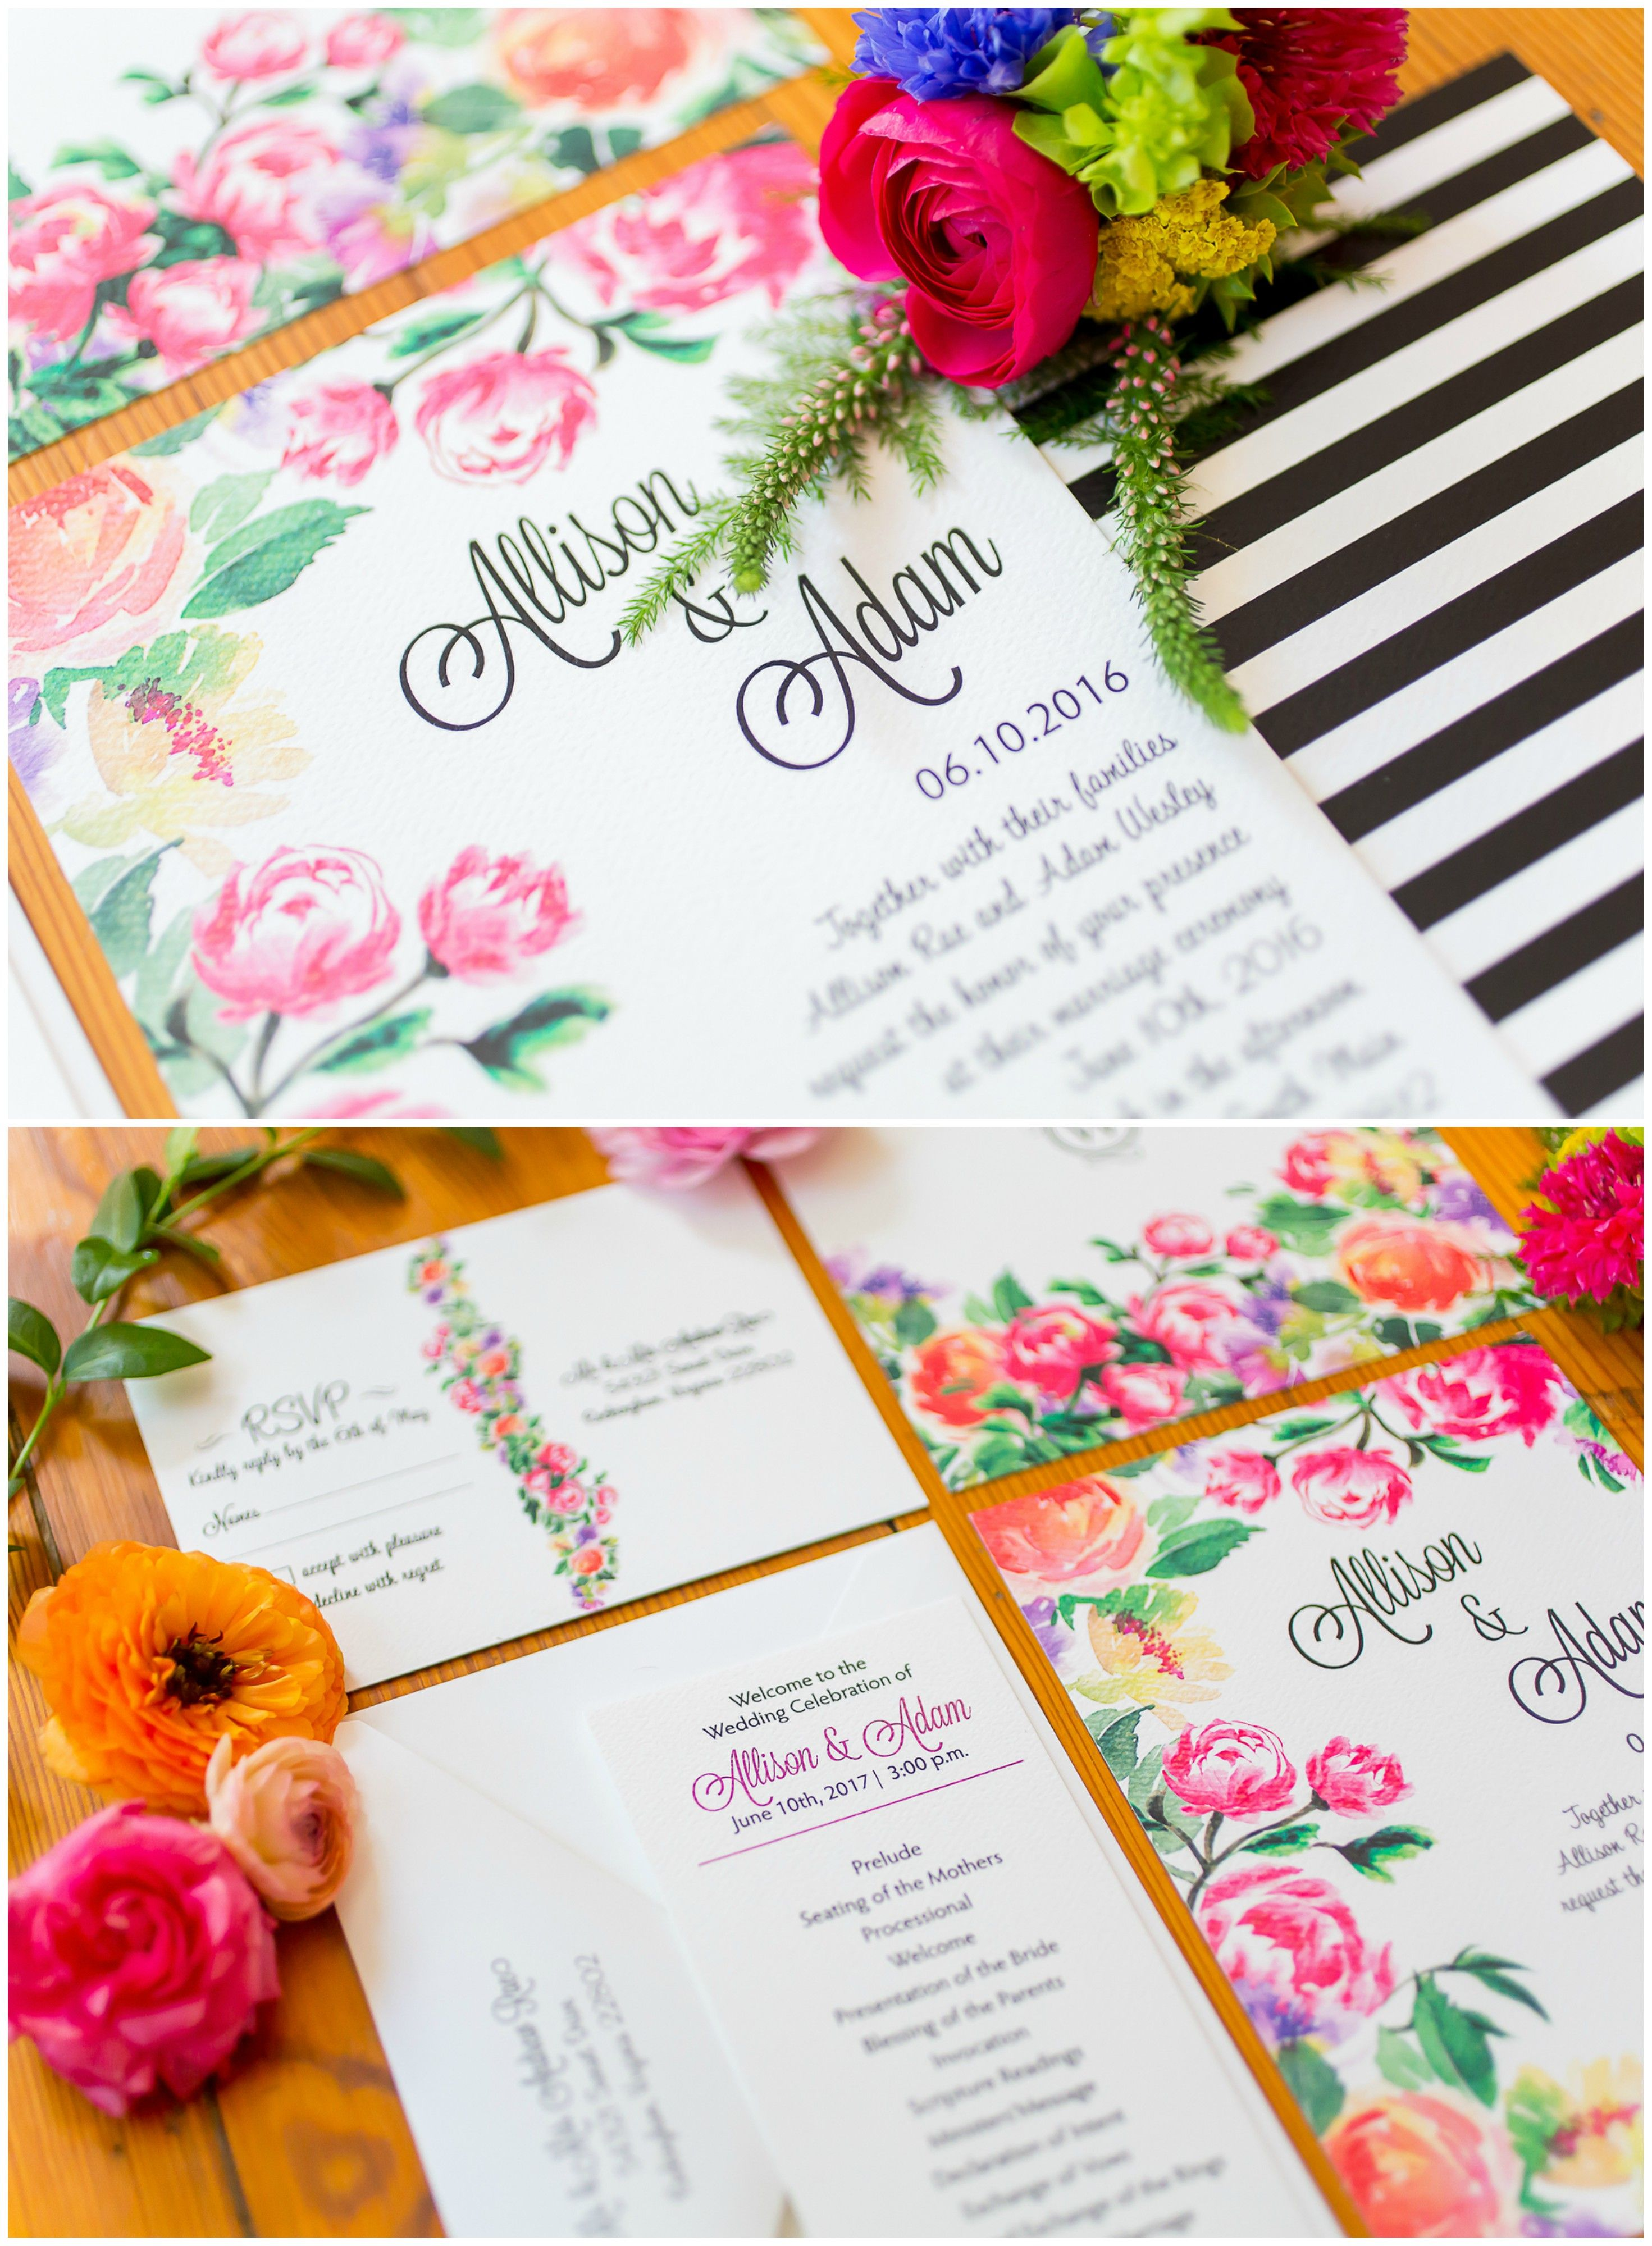 The Smarter Way to Wed | Colorful wedding invitations, Colorful ...